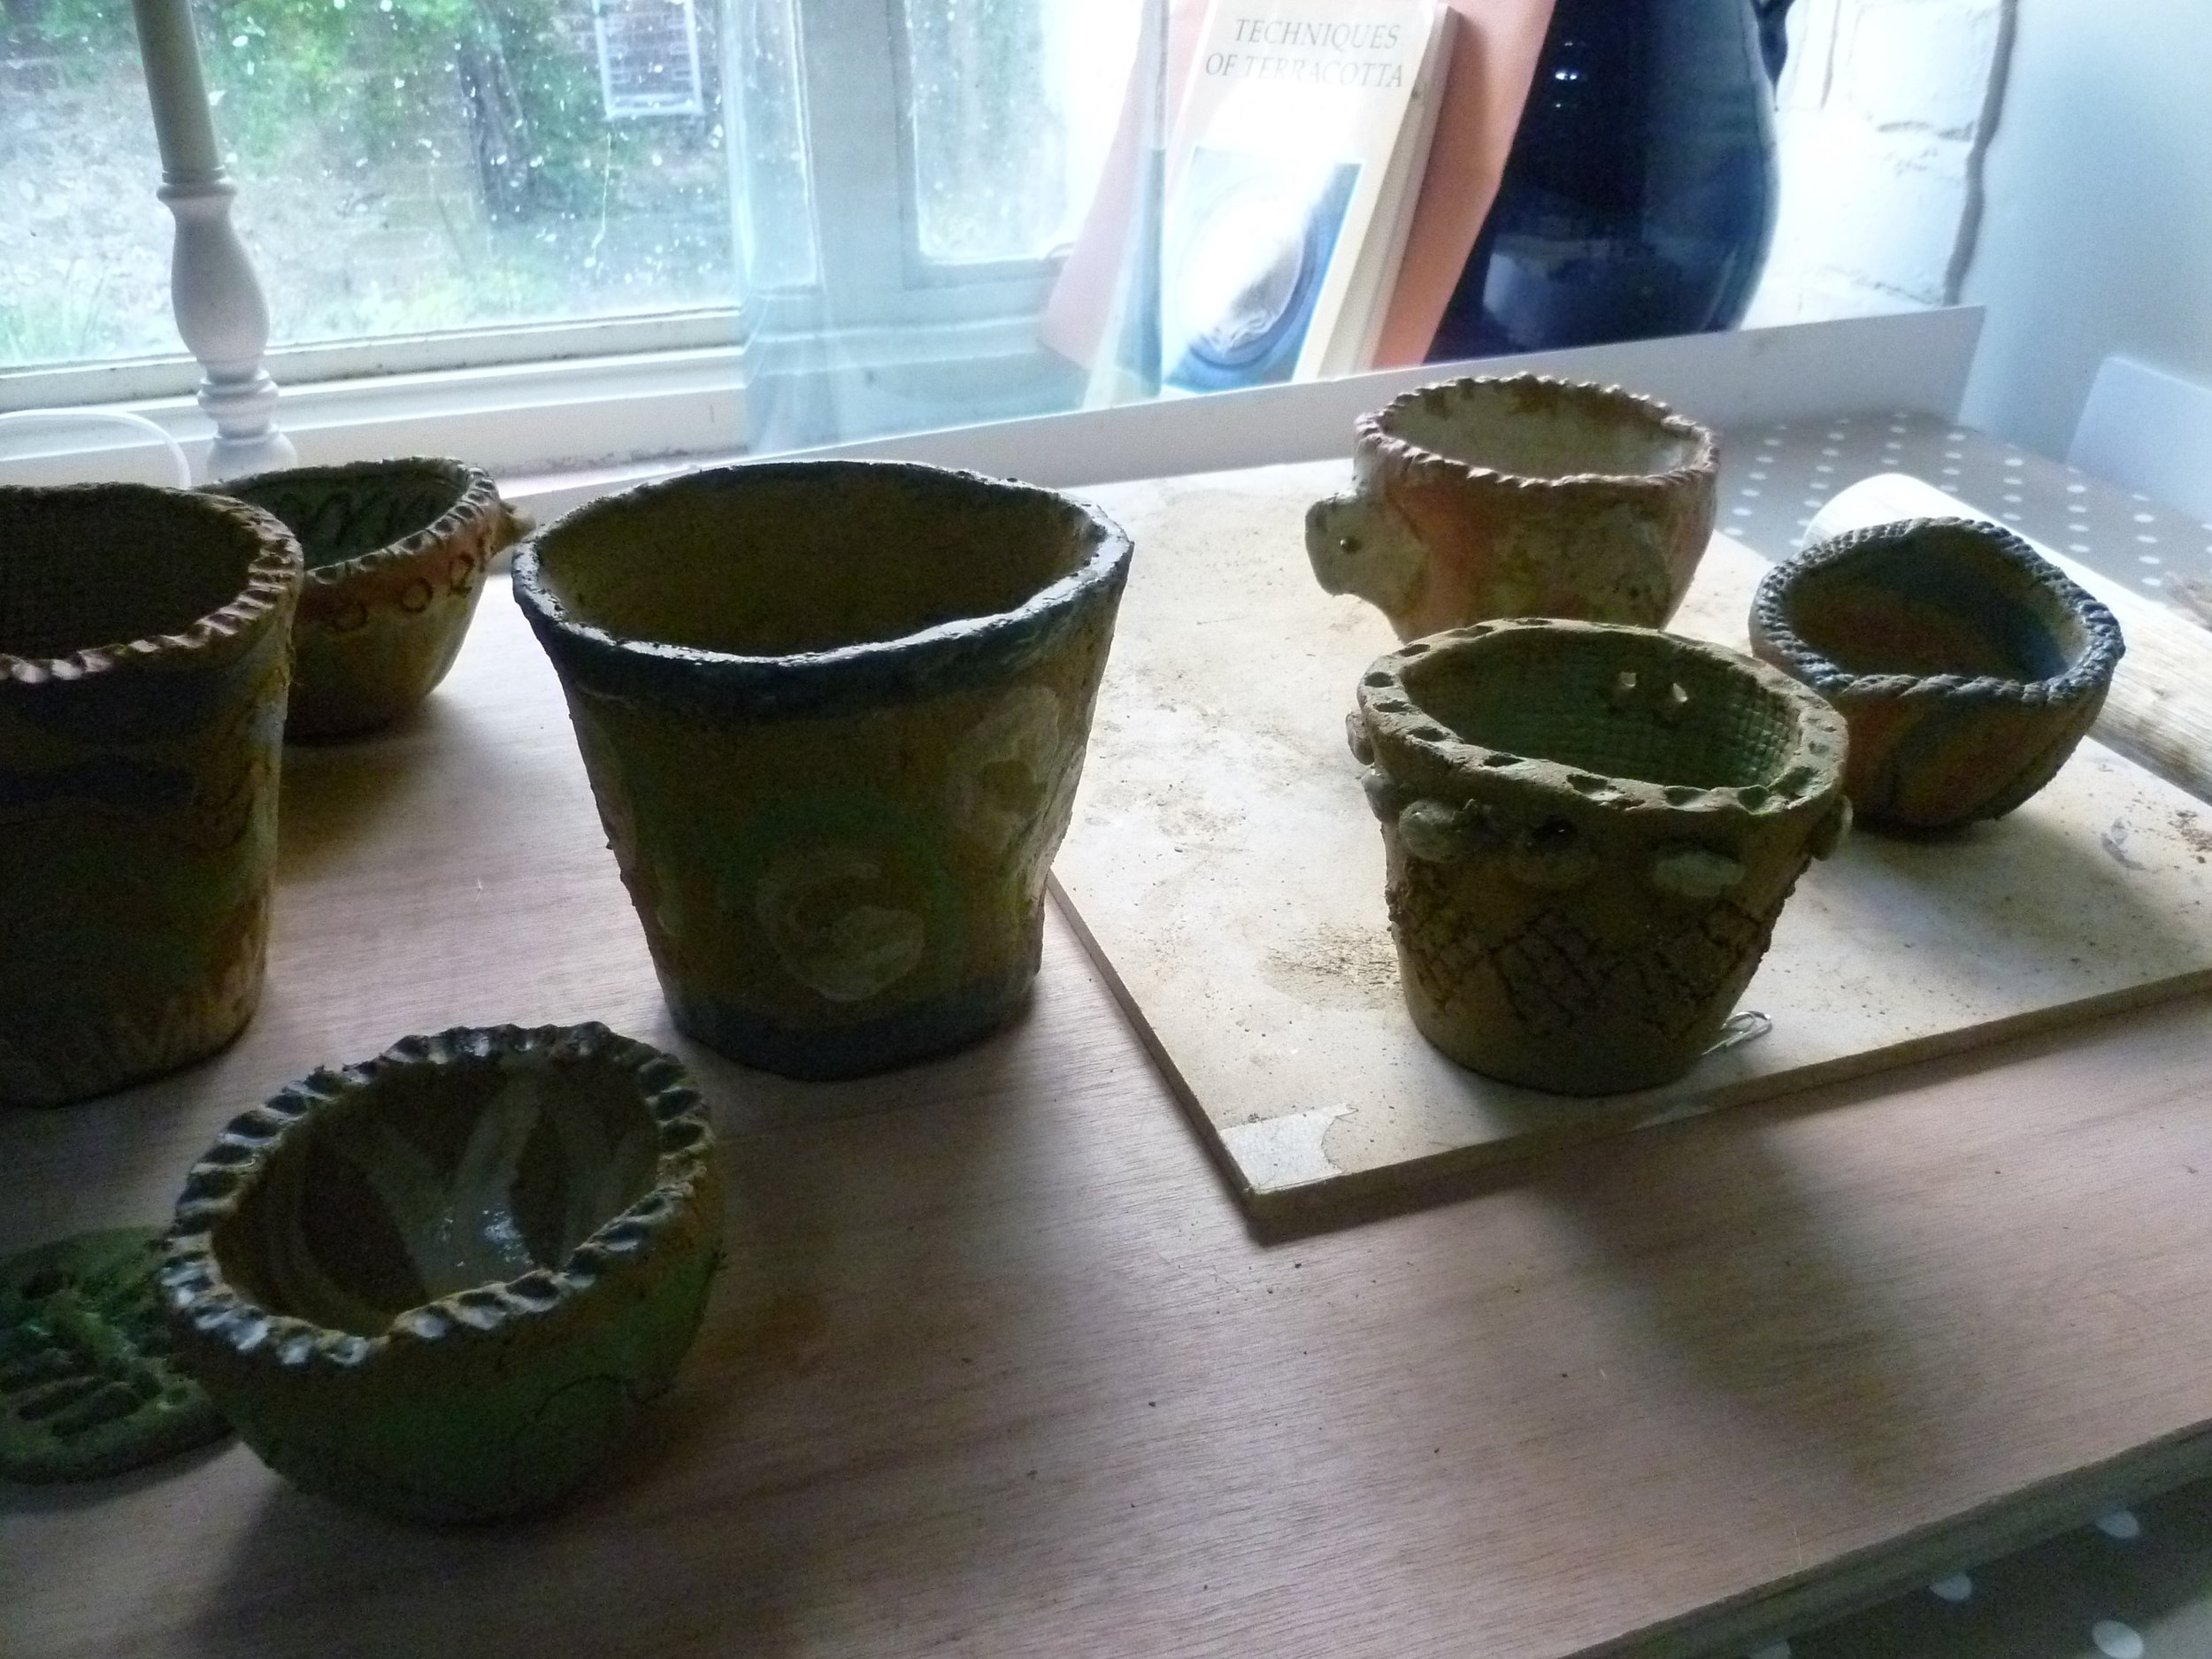 charleston-pottery-course-oct-2016-pots.jpg